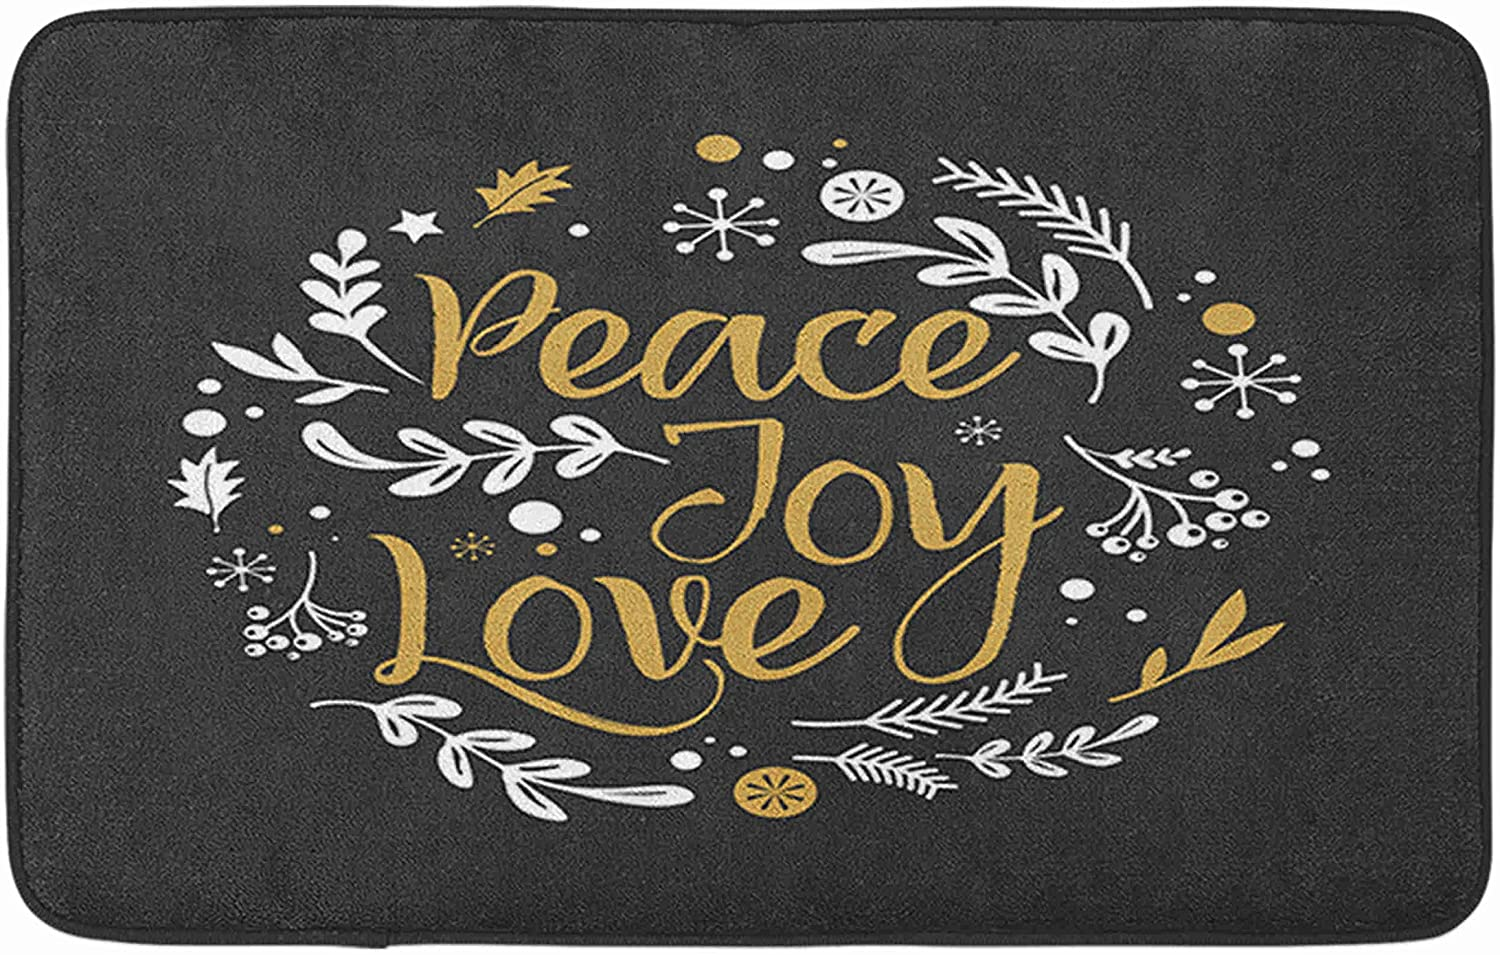 Adowyee Bath Mat Merry Christmas with Typography Lettering Greeting Peace Joy Love Winter Paper Xmas Cozy Bathroom Decor Bath Rug with Non Slip Backing 16